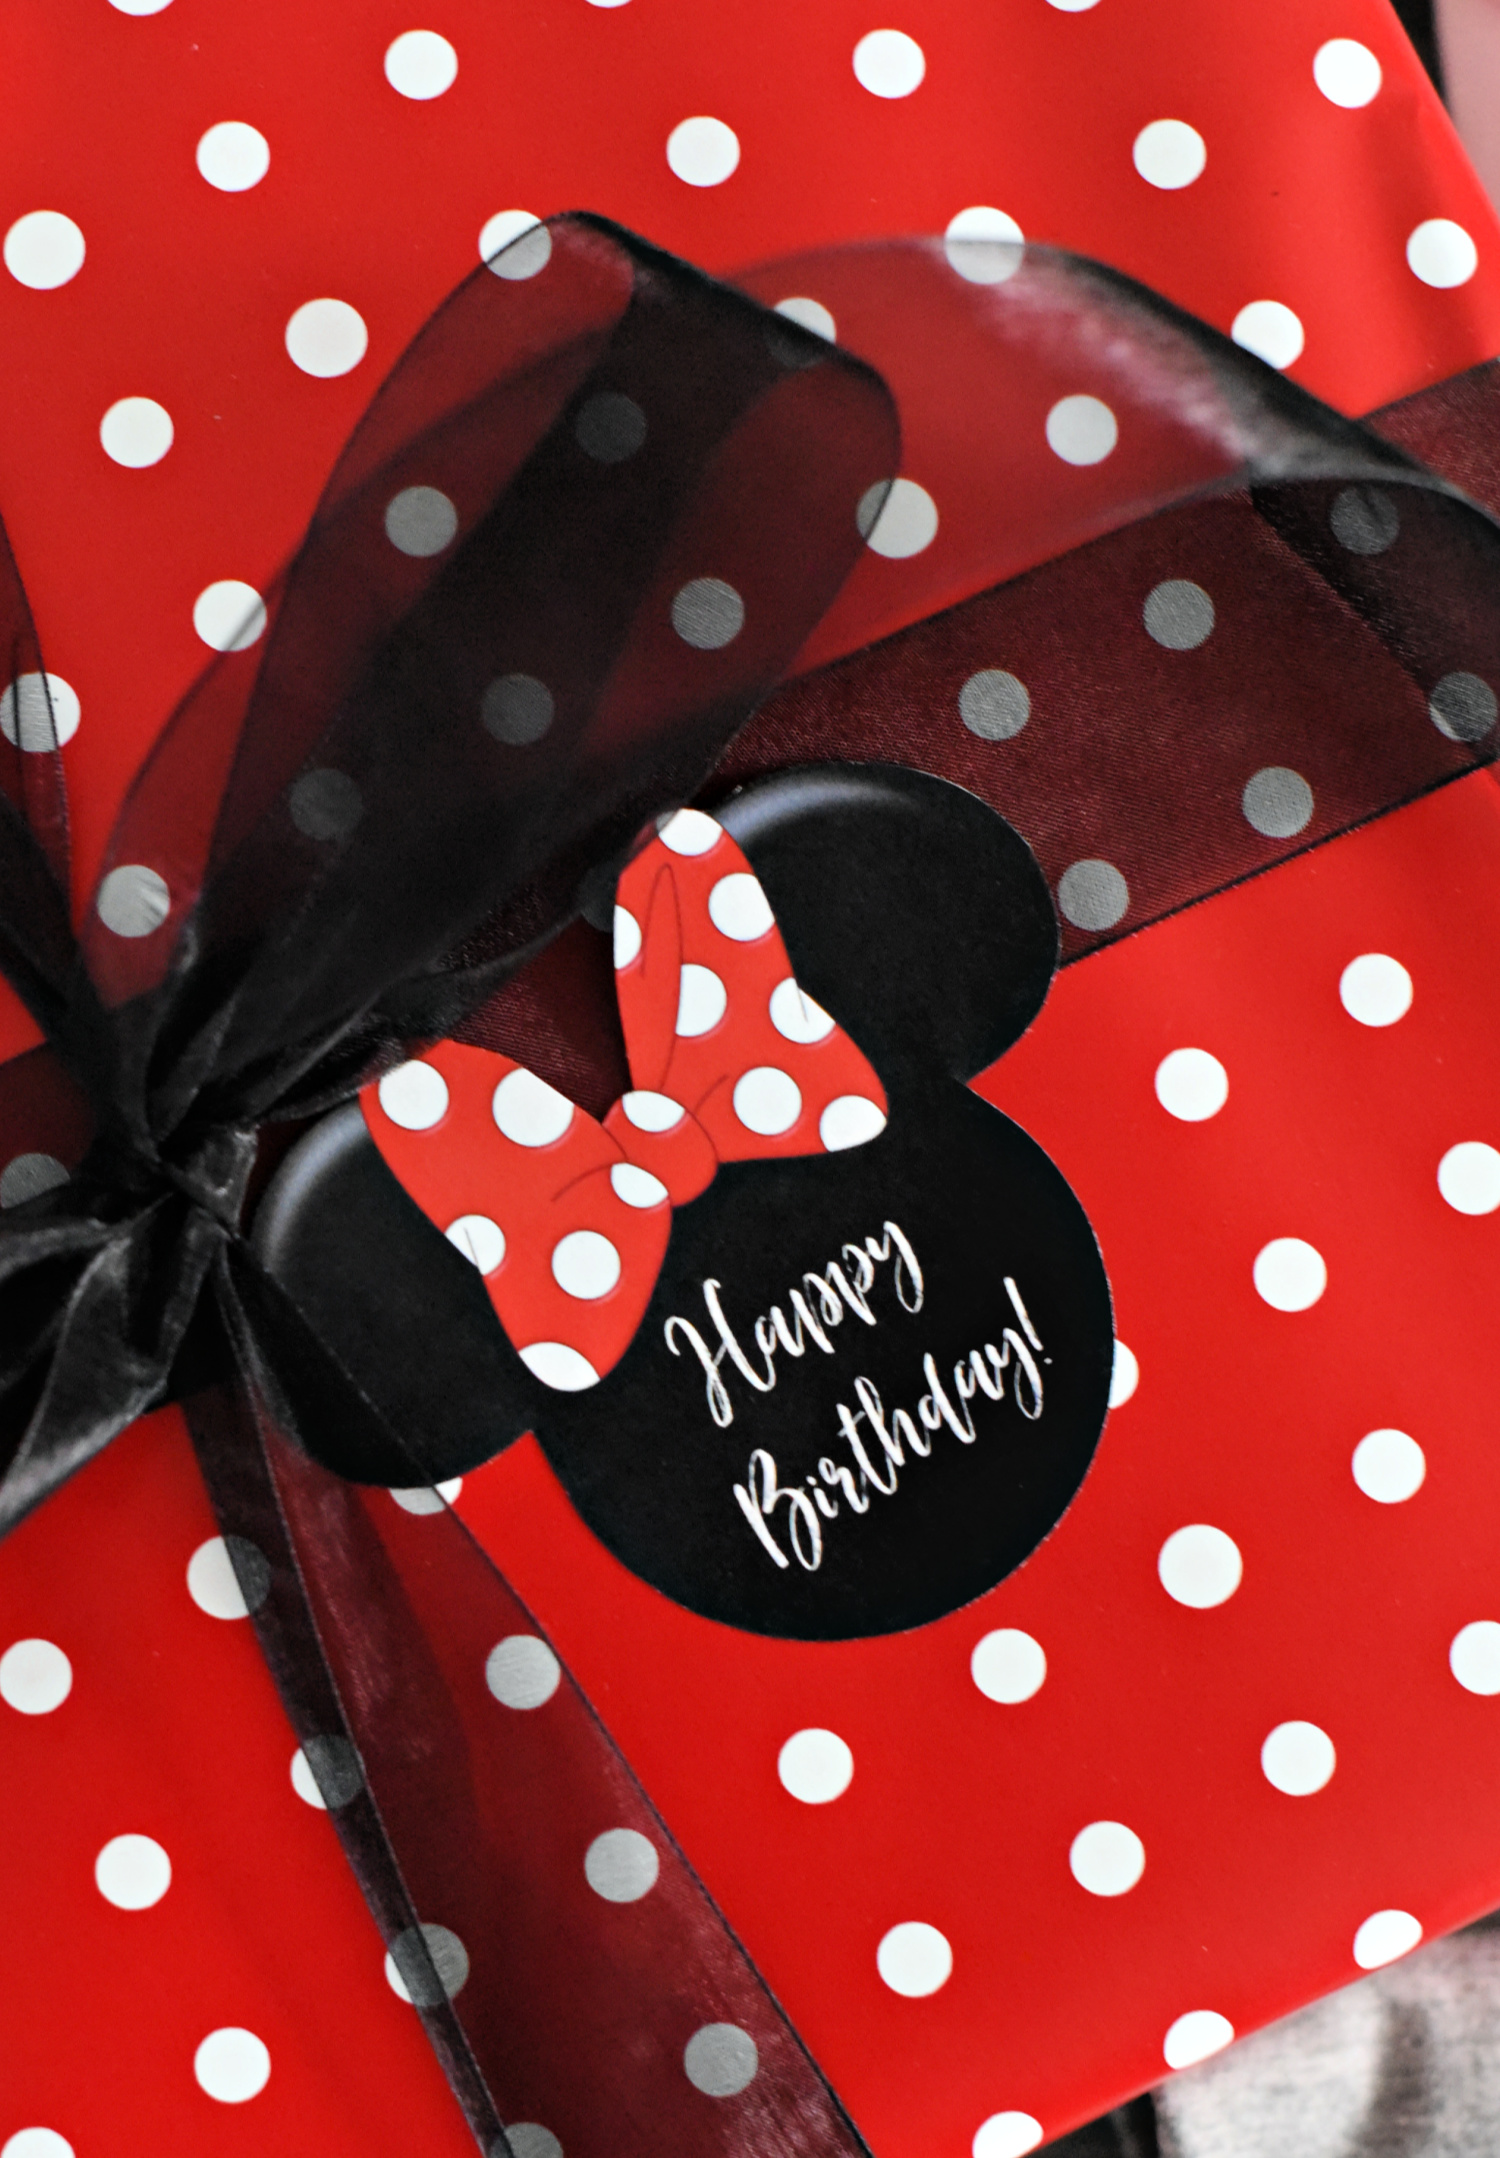 Minnie Mouse Gift Tag-Print this cute gift tag to add to any Disney themed birthday gift for friends! #minniemouse #disney #birthdaygifts #giftideas